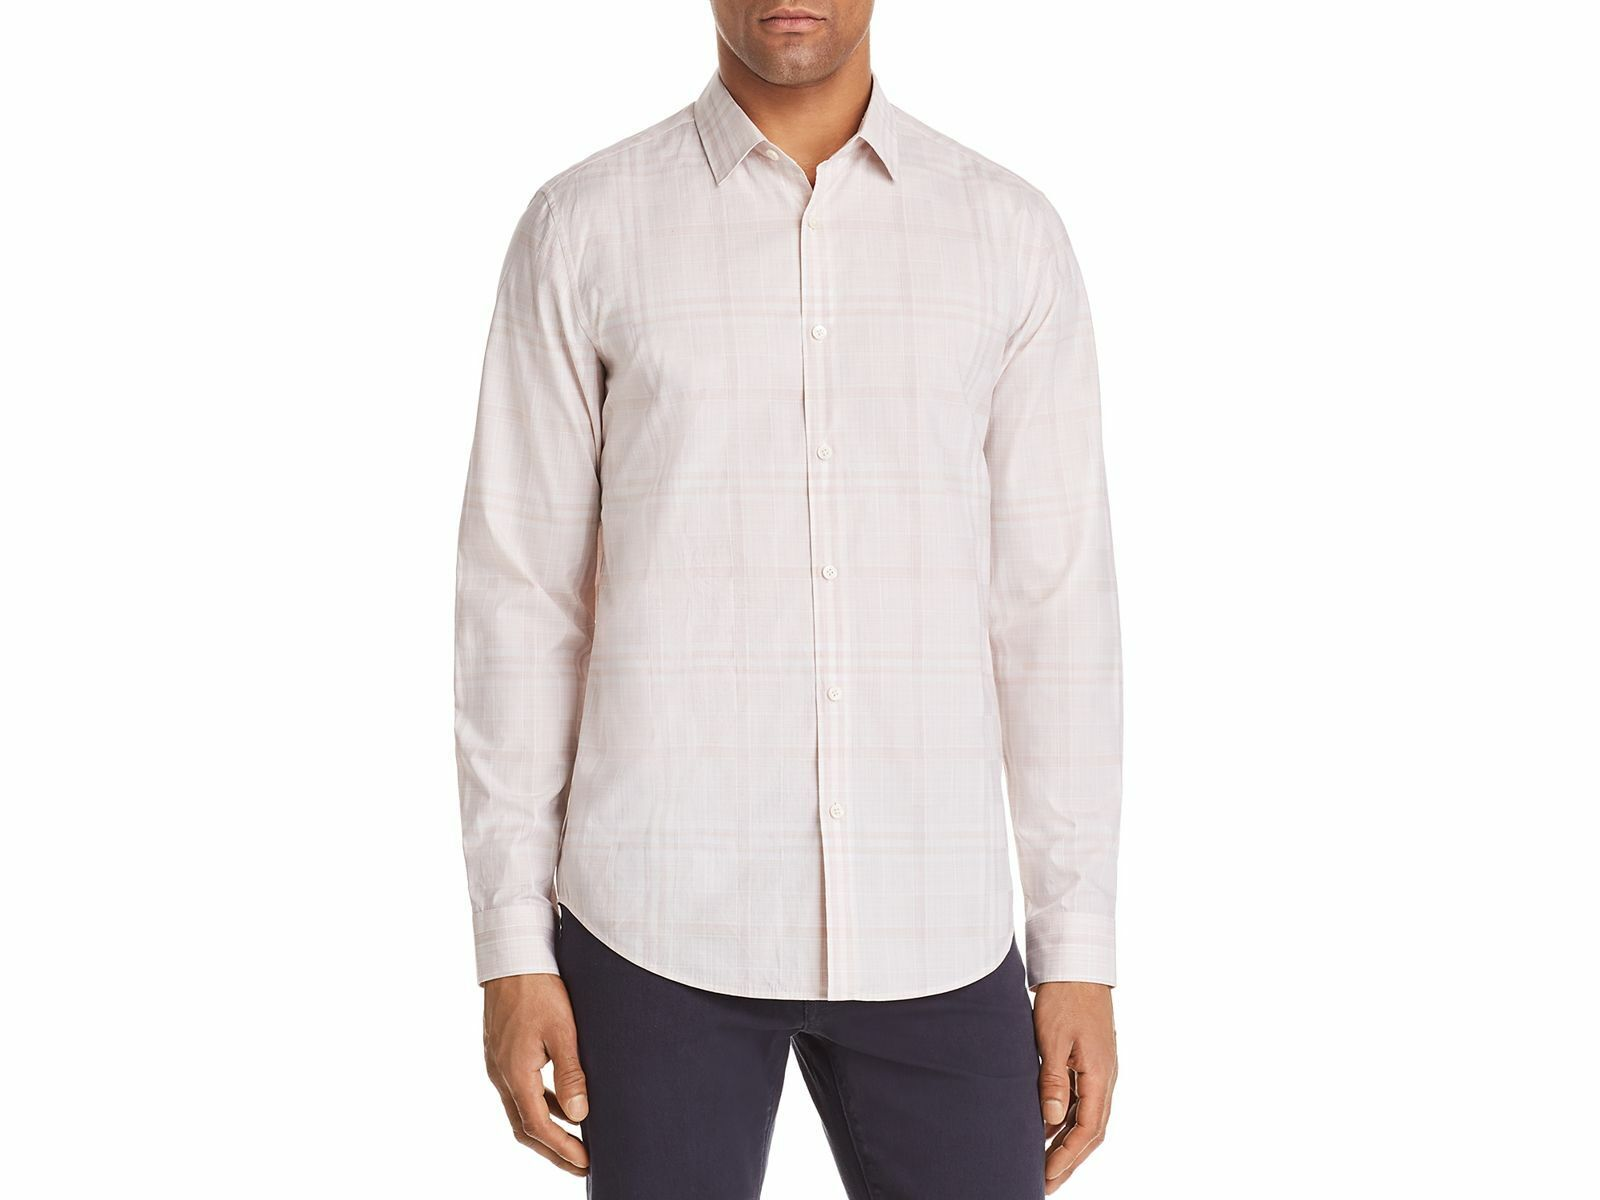 THEORY Men's SLIM-FIT PINK WHITE PLAID LONG-SLEEVE BUTTON TOP SPORT SHIRT M